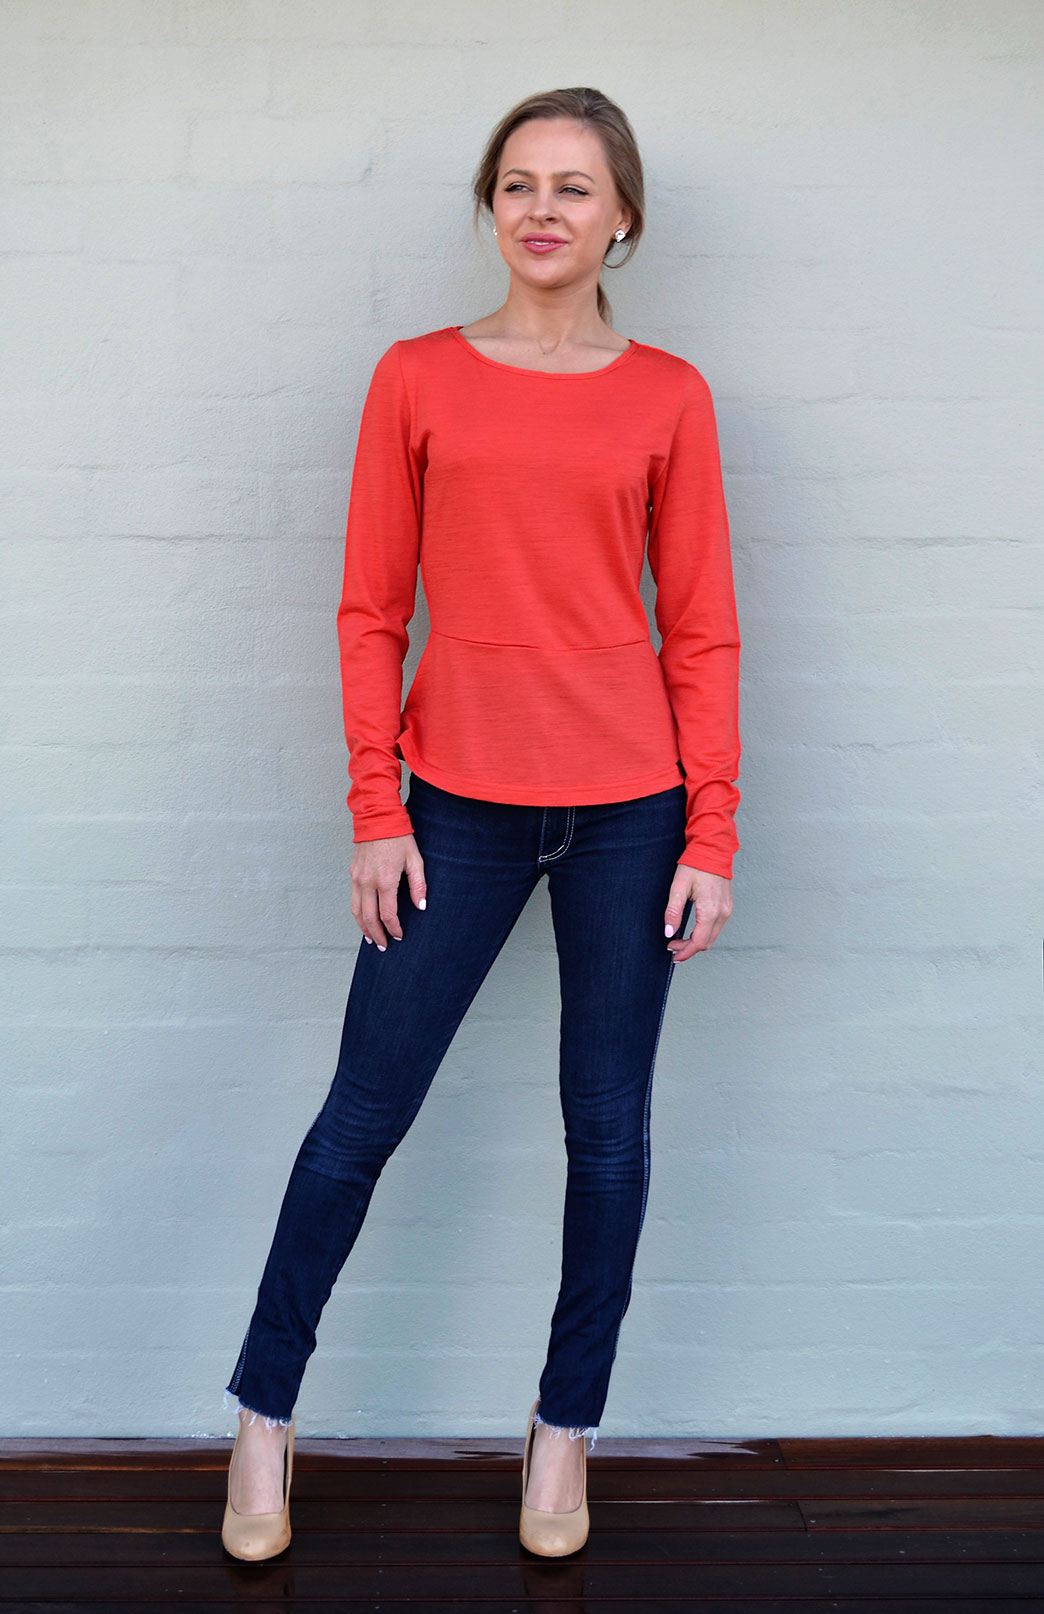 Peplum Top - Long Sleeved - Women's Paprika Orange Long Sleeve Wool Winter Top - Smitten Merino Tasmania Australia